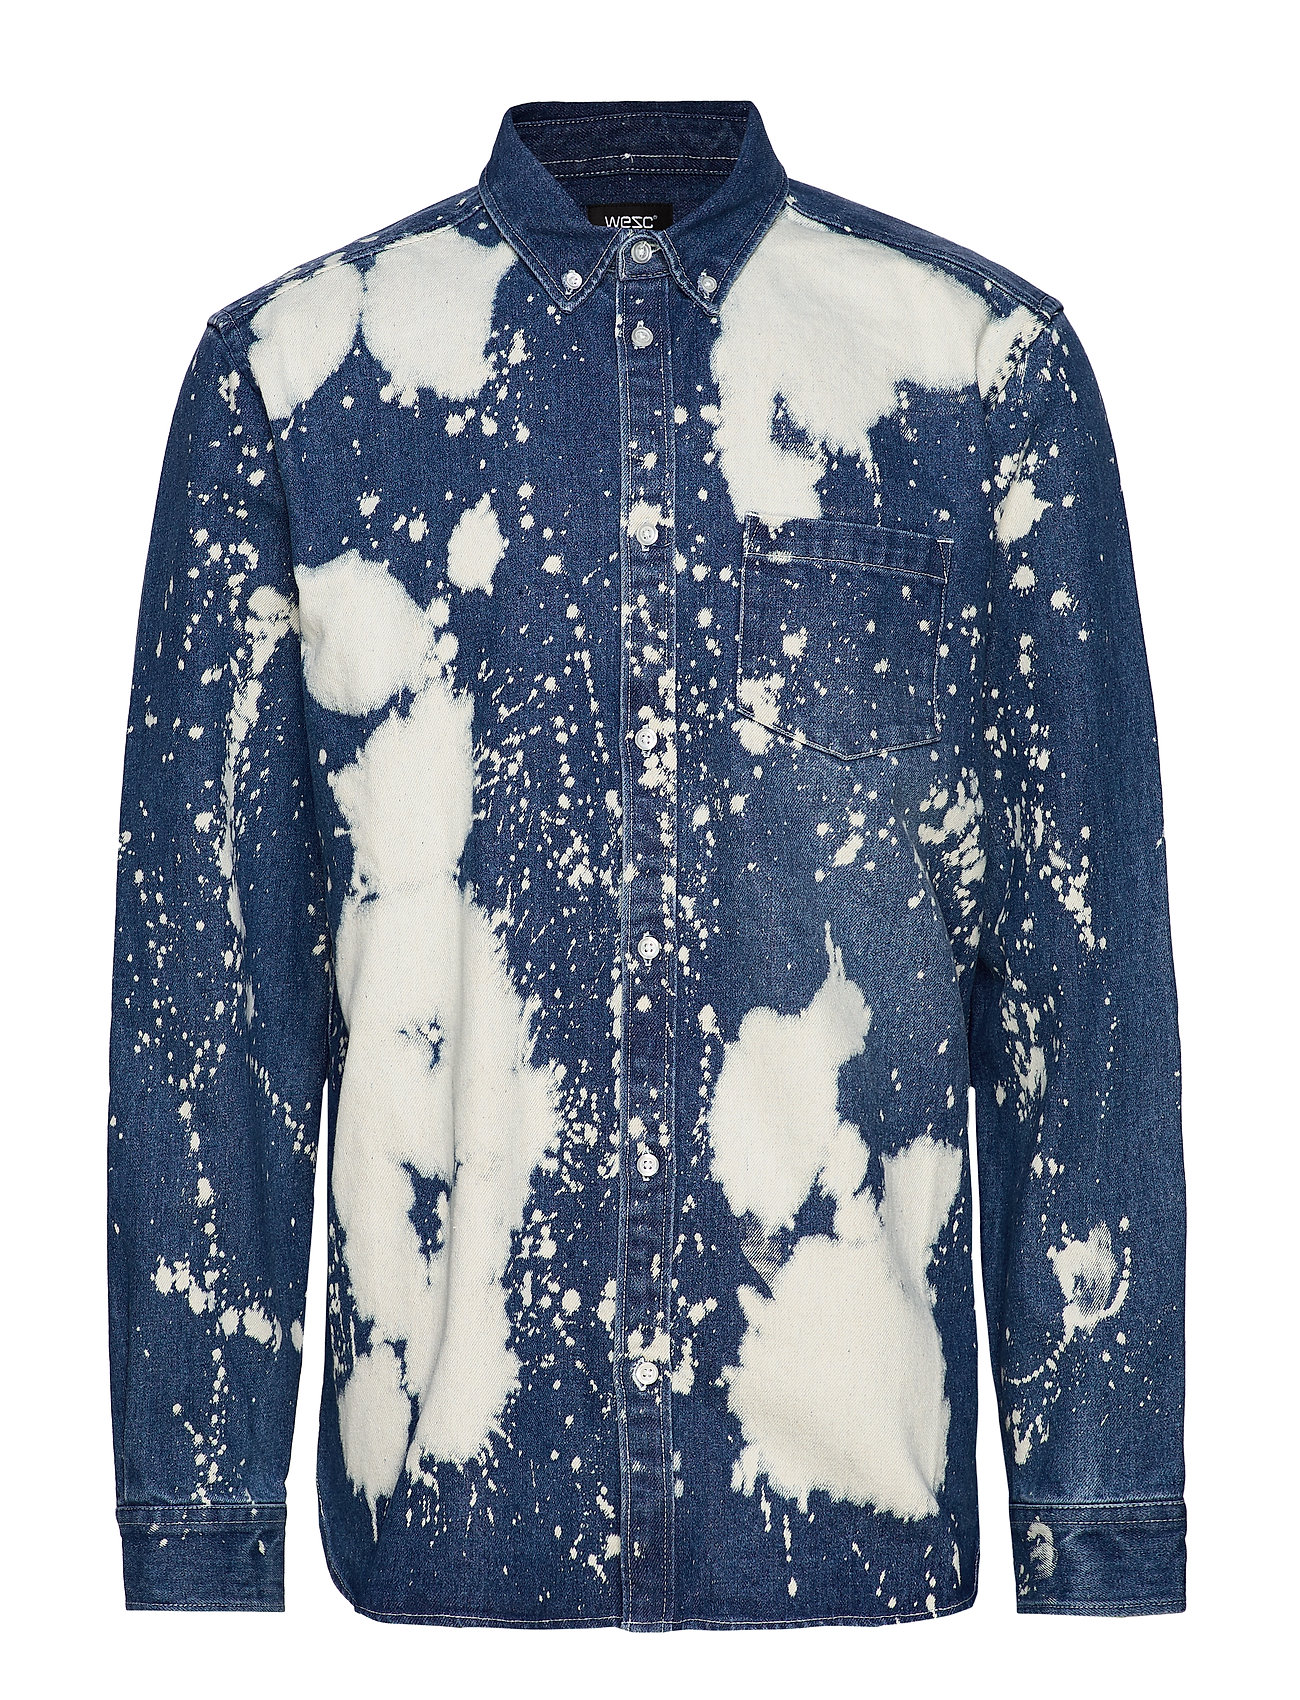 WeSC Olavi Denim Shirt - BLEACH SPLATTER DENIM